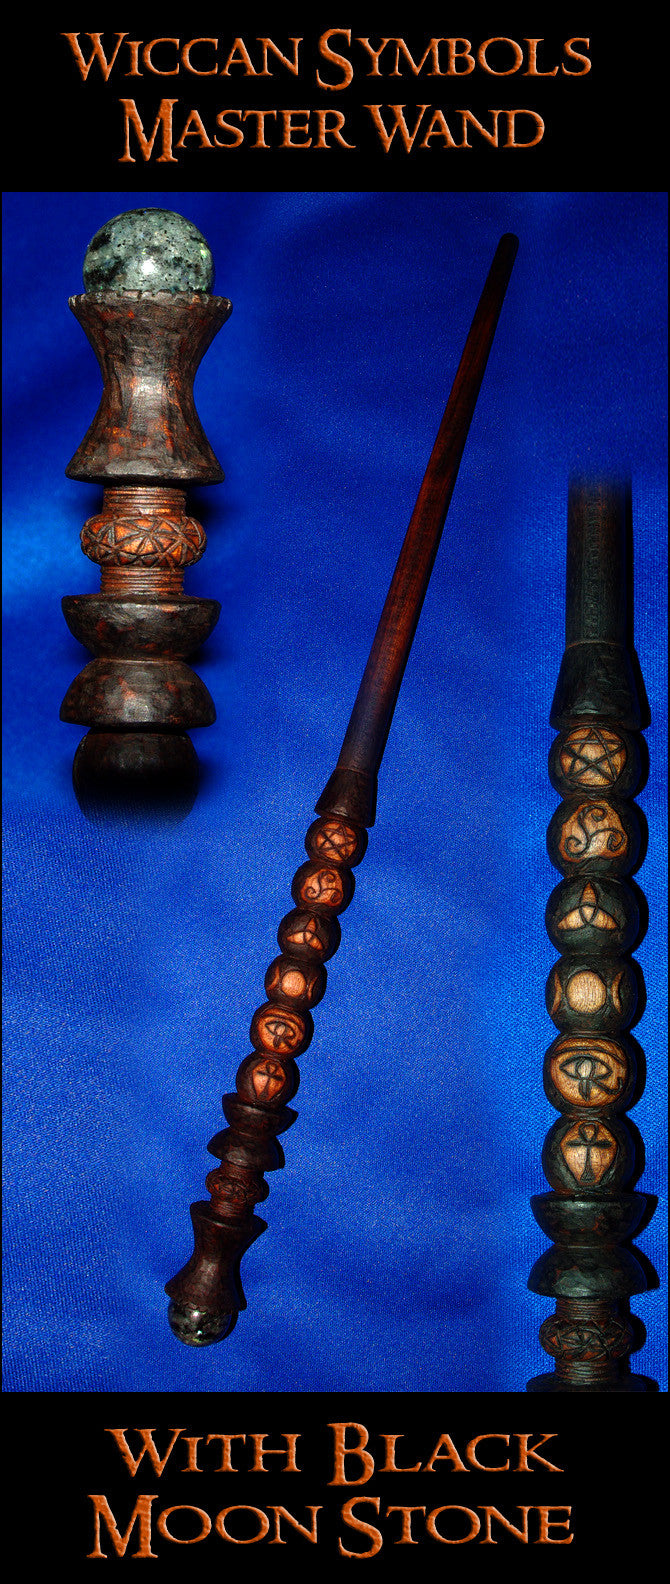 Wiccan Symbols Moon Stone Wizard Magic Wand